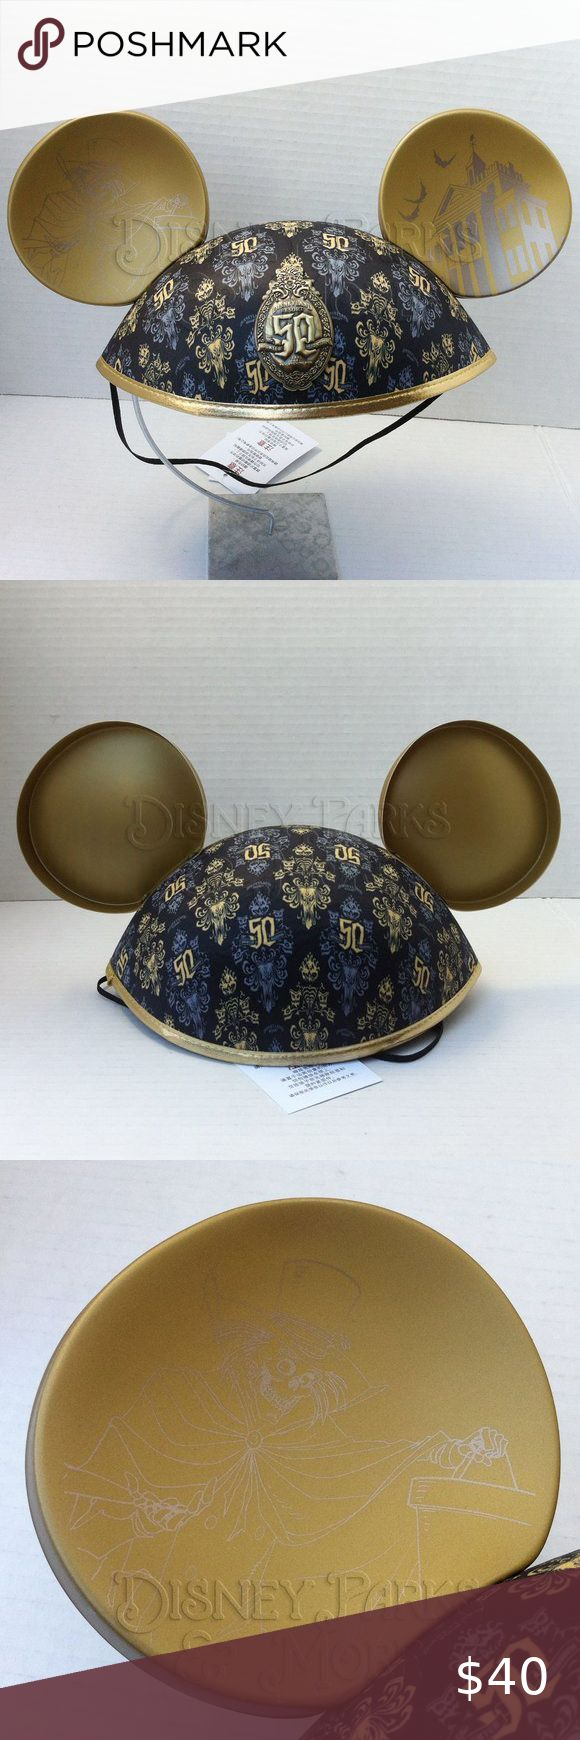 Disney Haunted Mansion 50th Anniversary Ears Hat in 2020